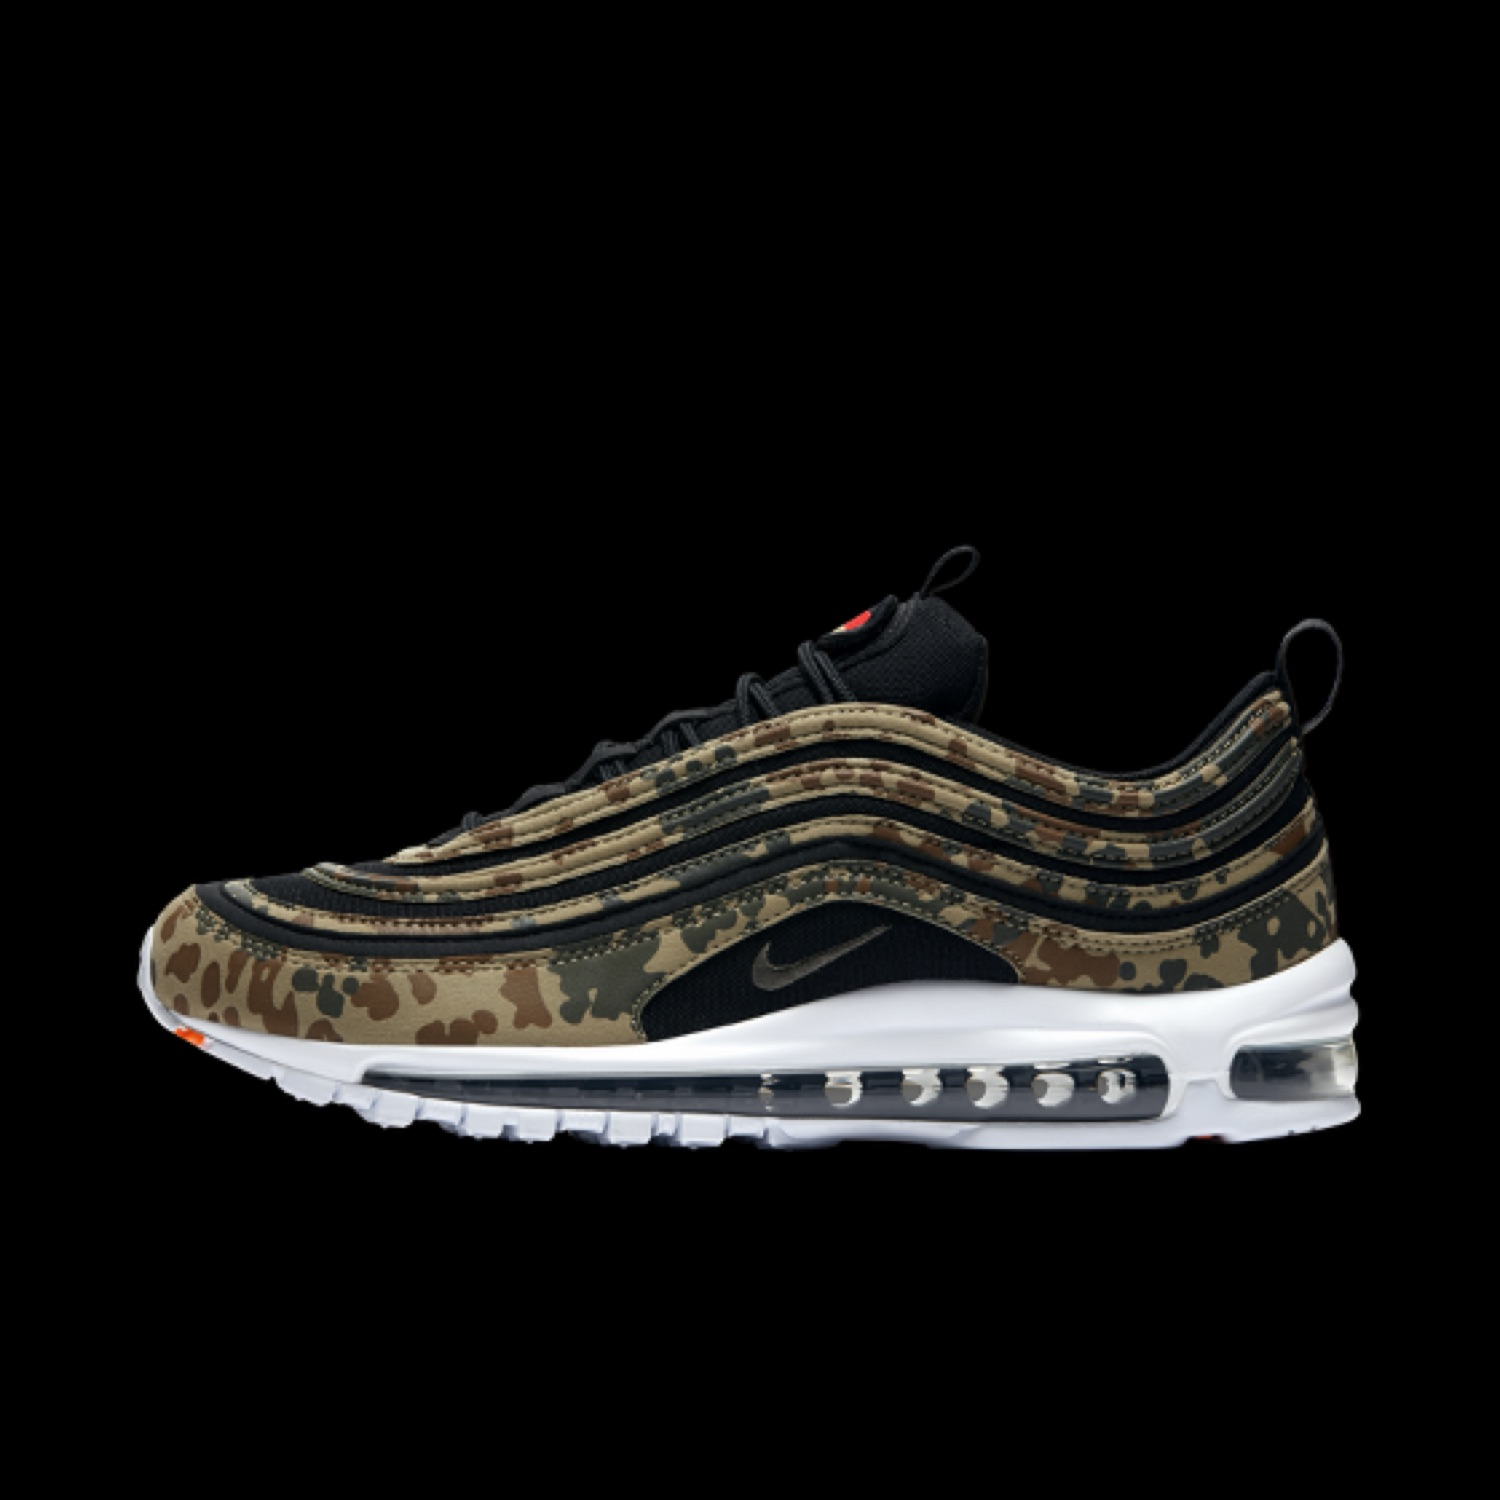 International Nike Air Premium German Max 97 54qA3LRj